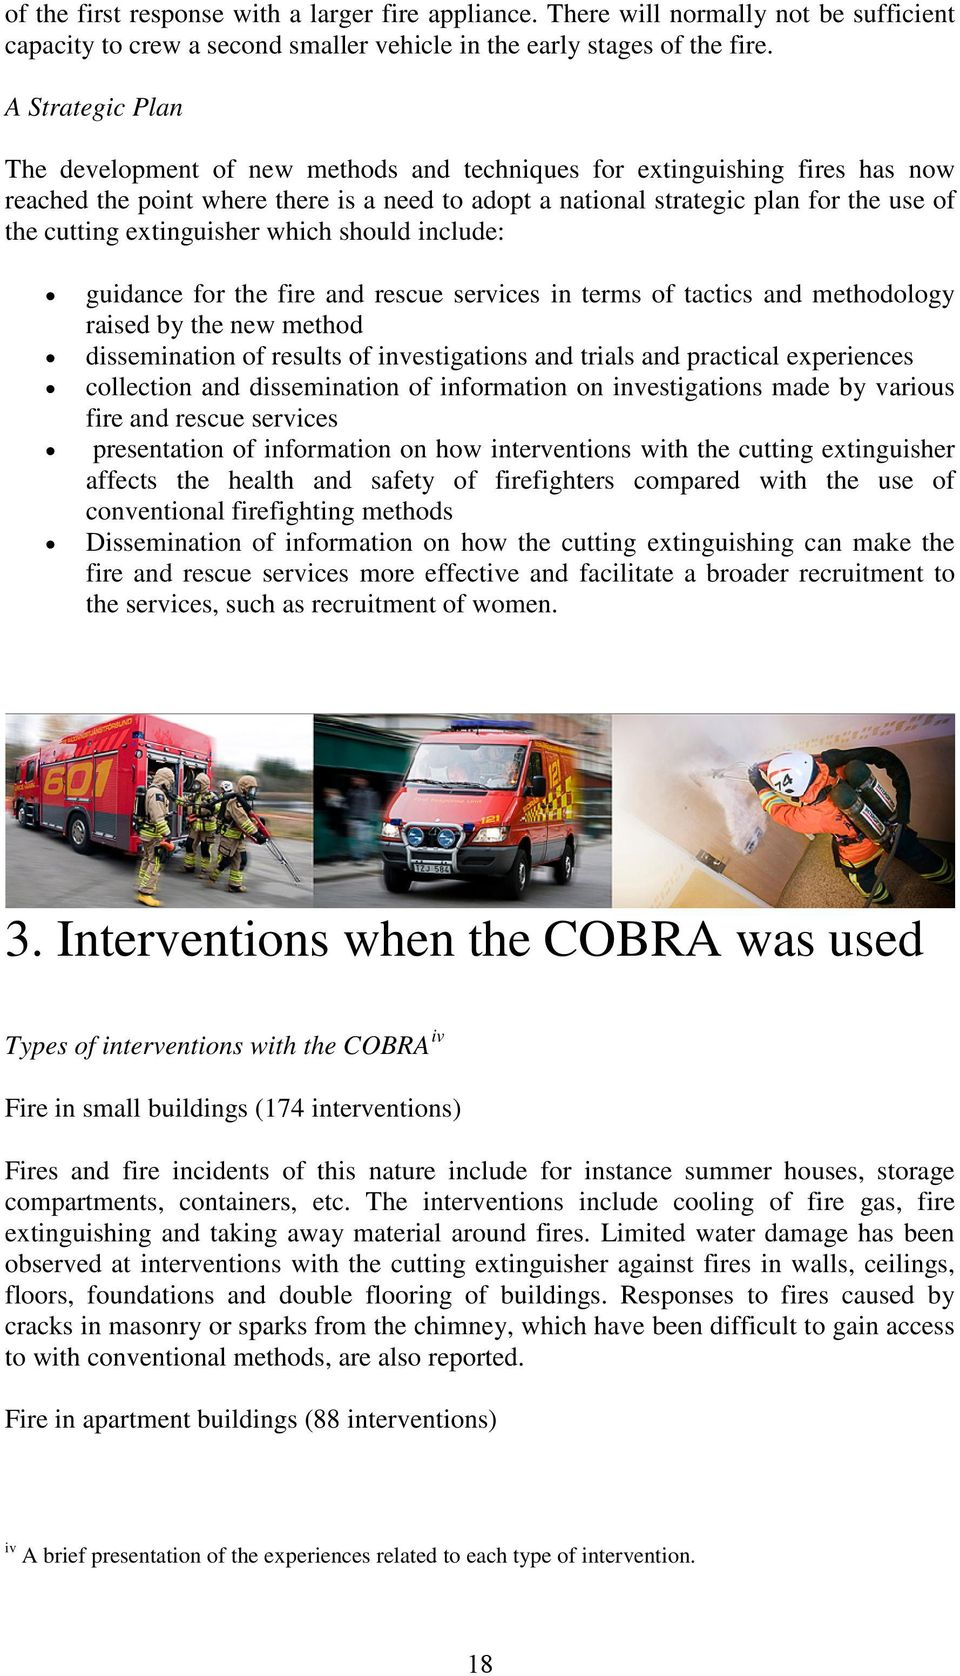 extinguisher which should include: guidance for the fire and rescue services in terms of tactics and methodology raised by the new method dissemination of results of investigations and trials and